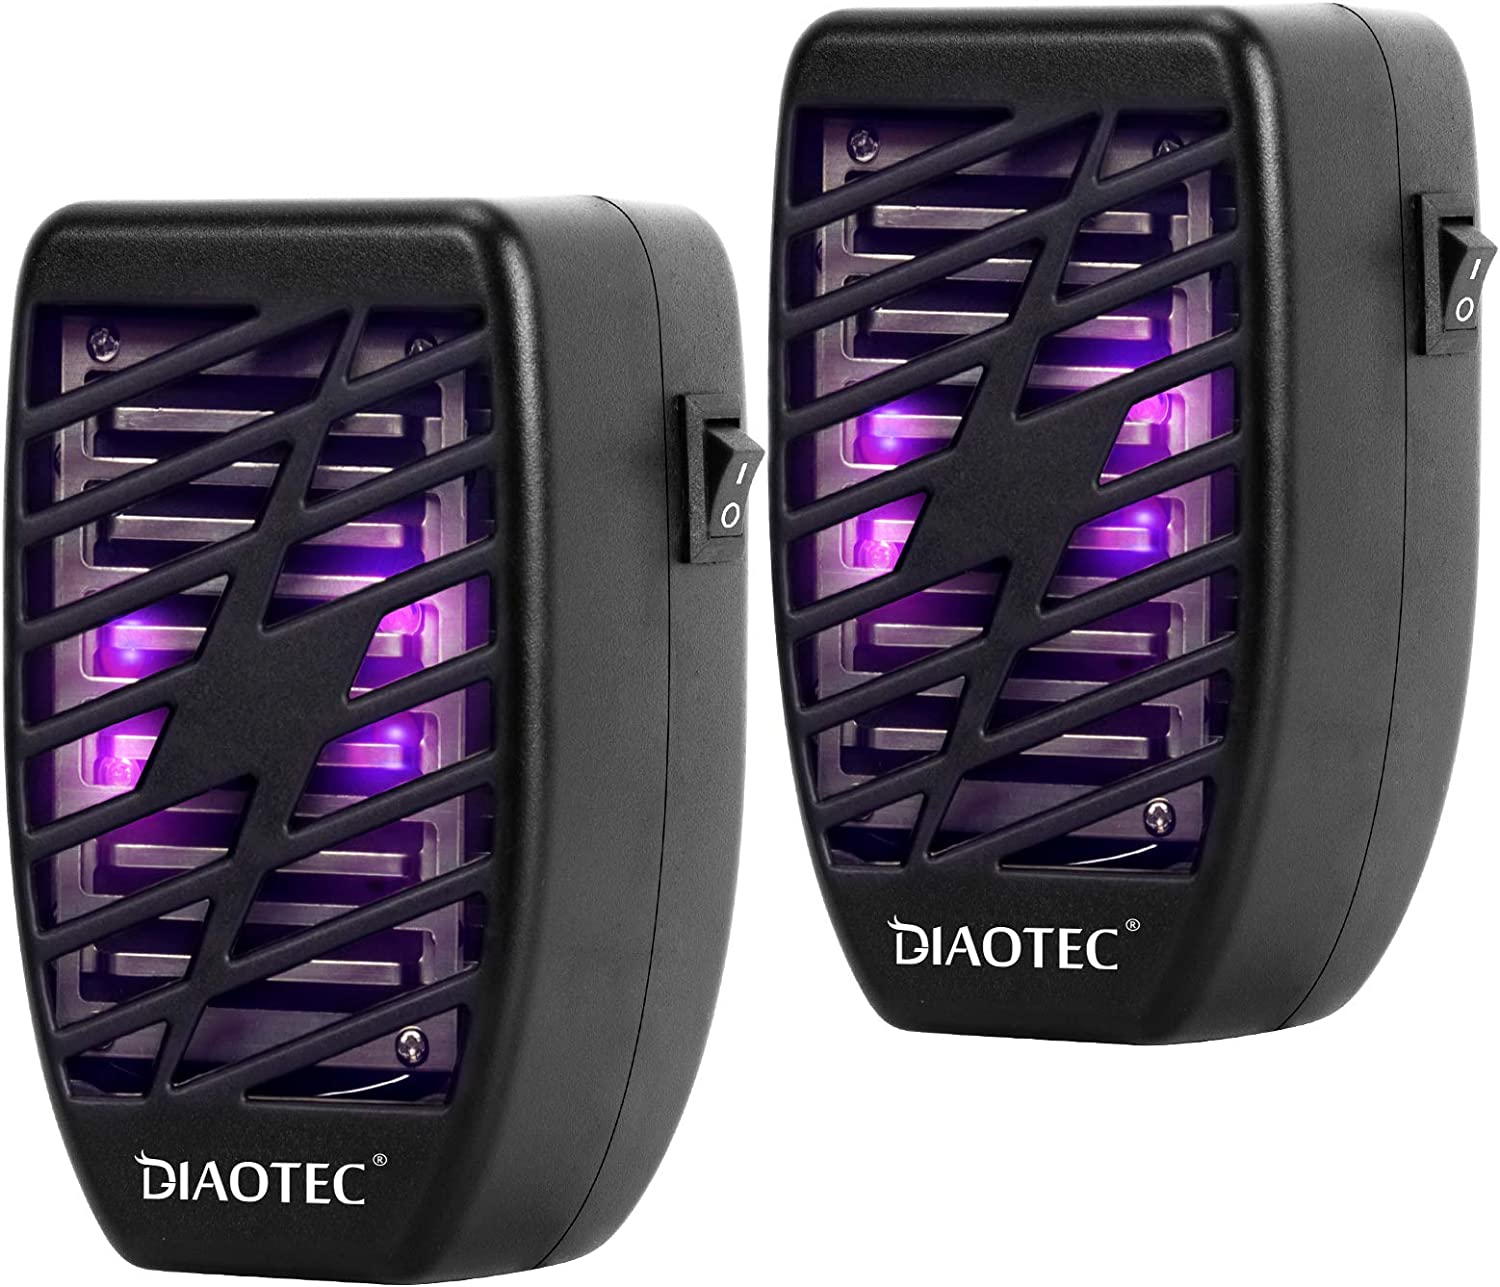 Diaotec 2Pack Indoor Plug-in Mosquito Trap Electronic Bug Zapper with Night Light - Insect Killer - Gnat Killer Lamp - Electric Insect Repellent - Eliminates Flying Pests Flies Gnats Moth and Bugs